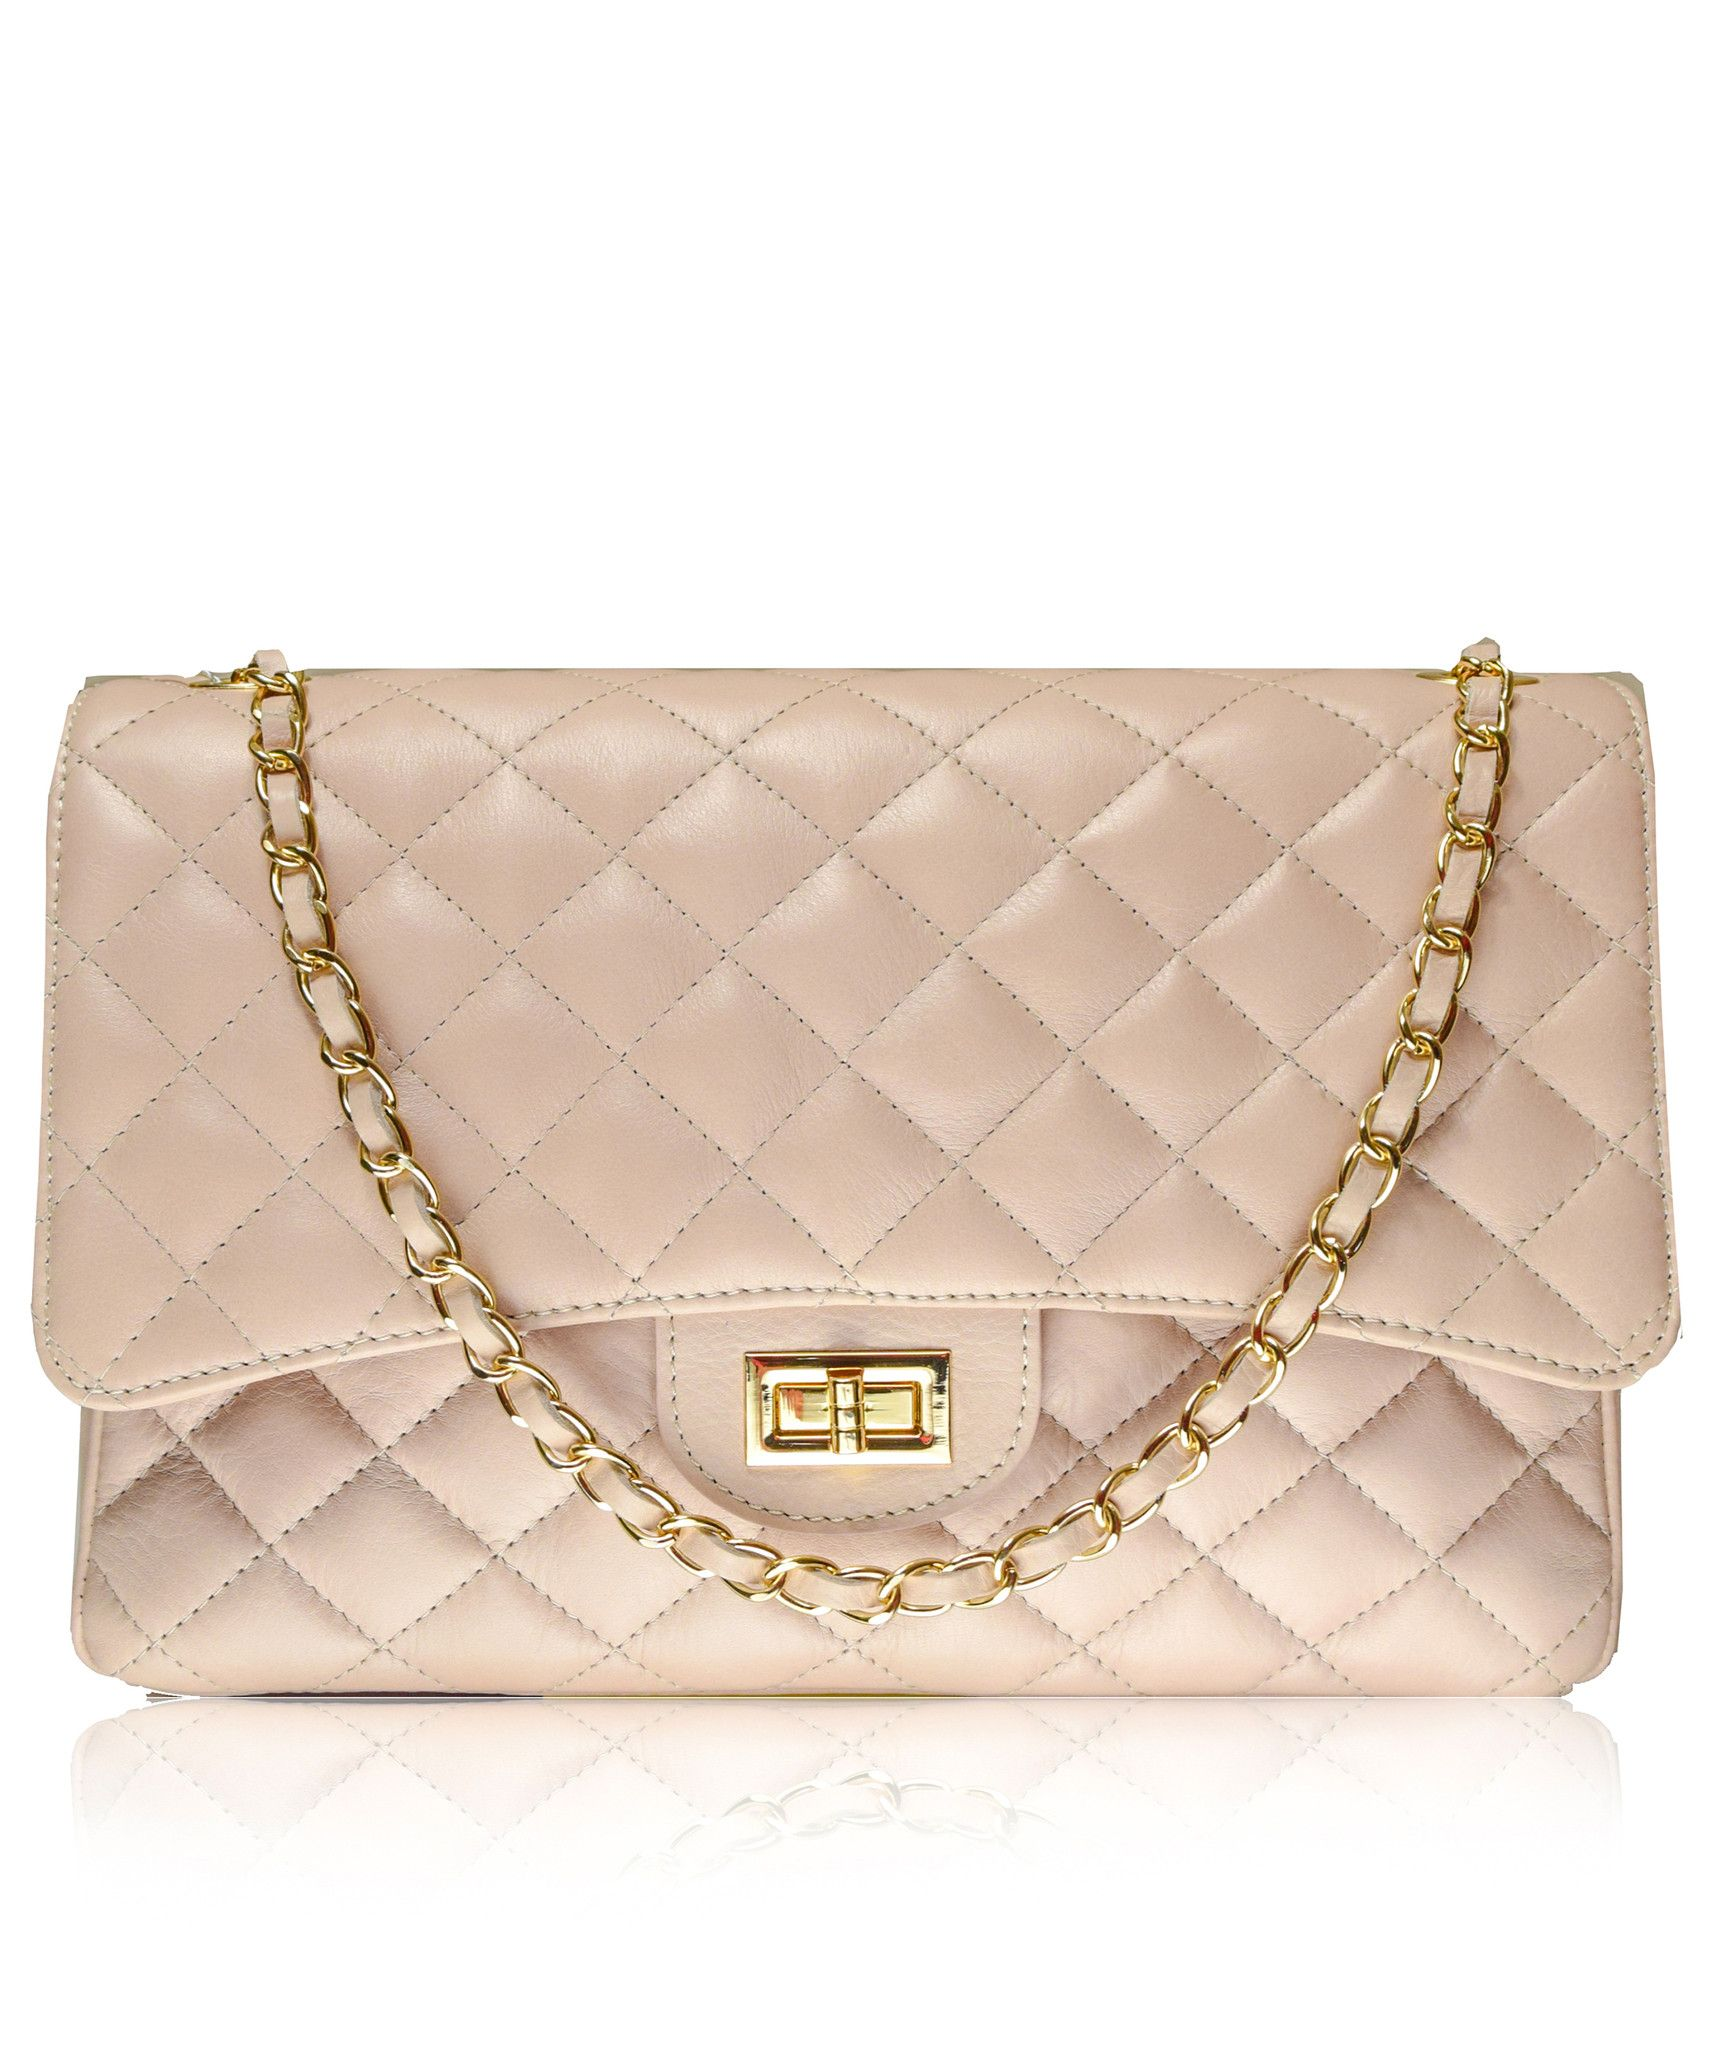 Stretto Large Pink Chanel Style Italian Quilted Leather Handbag From Florence Collection